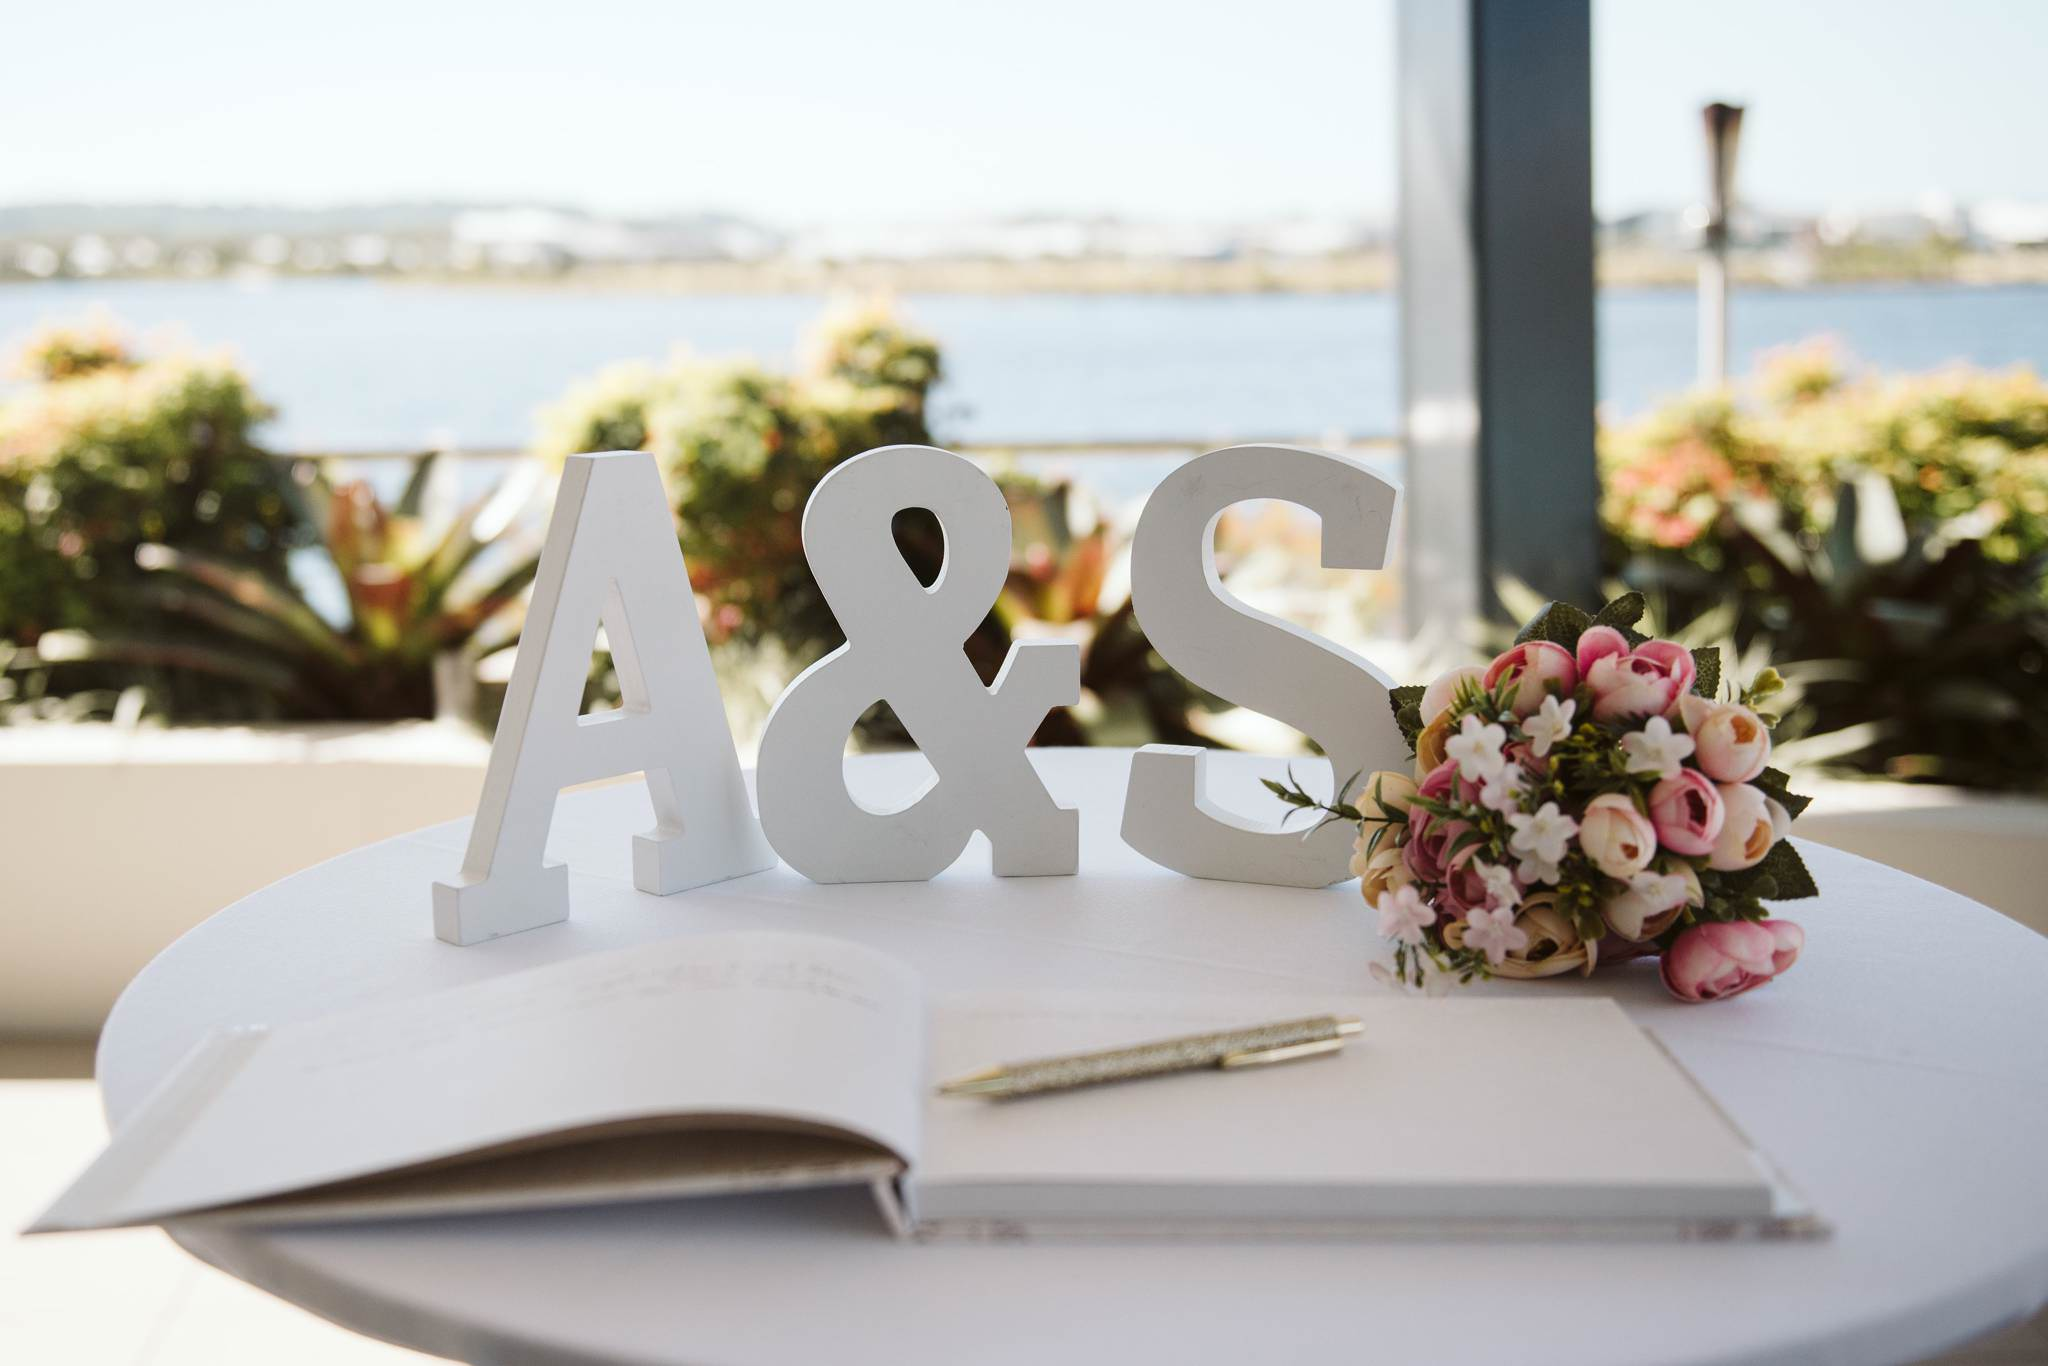 Wooden Initials on a table with guest book